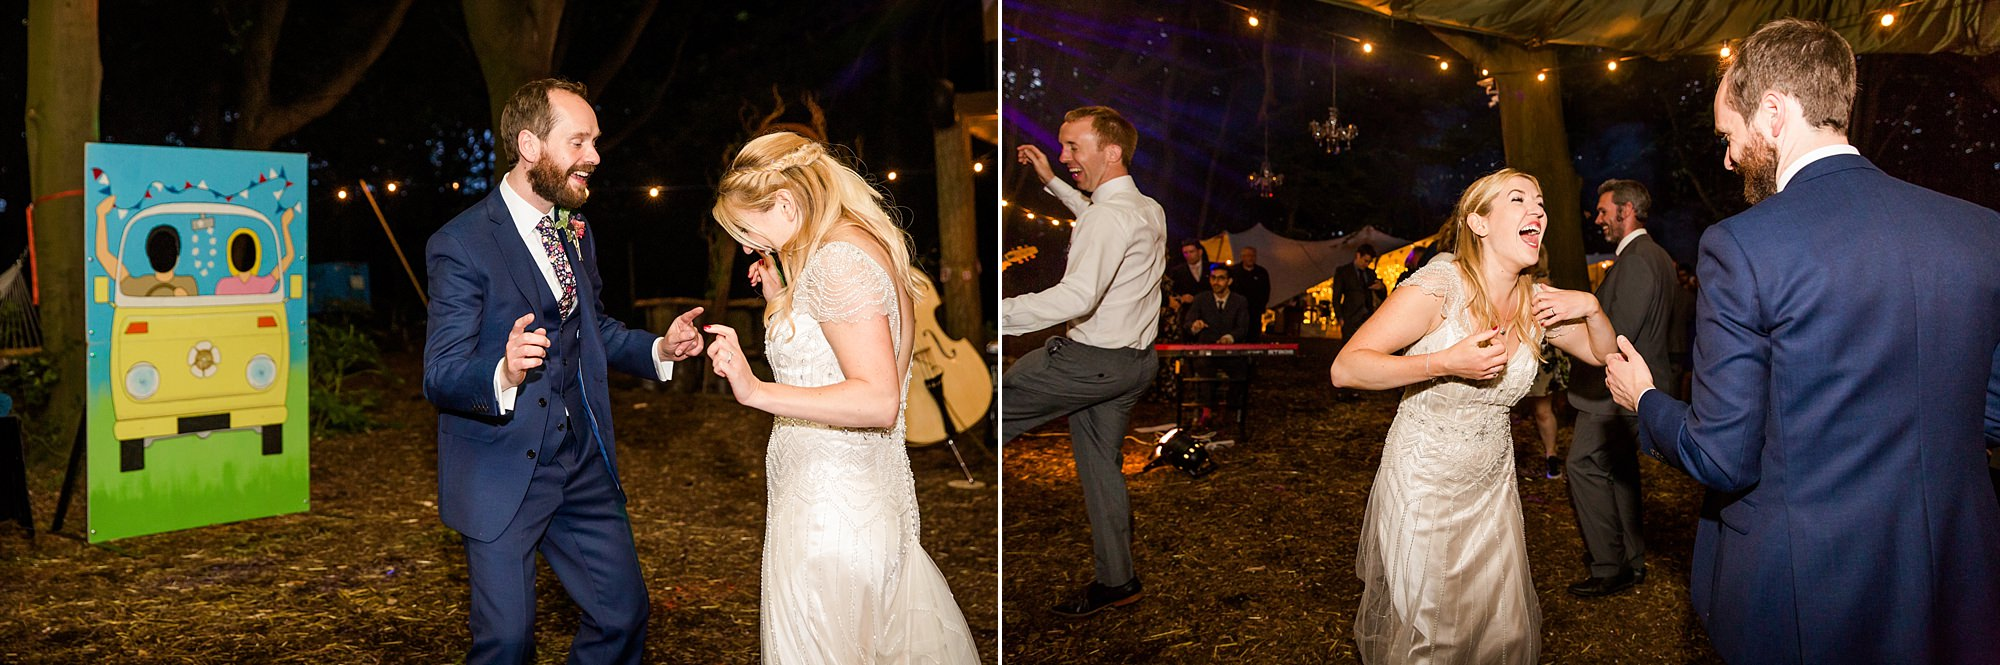 Woodland Weddings Tring bride and groom dancing